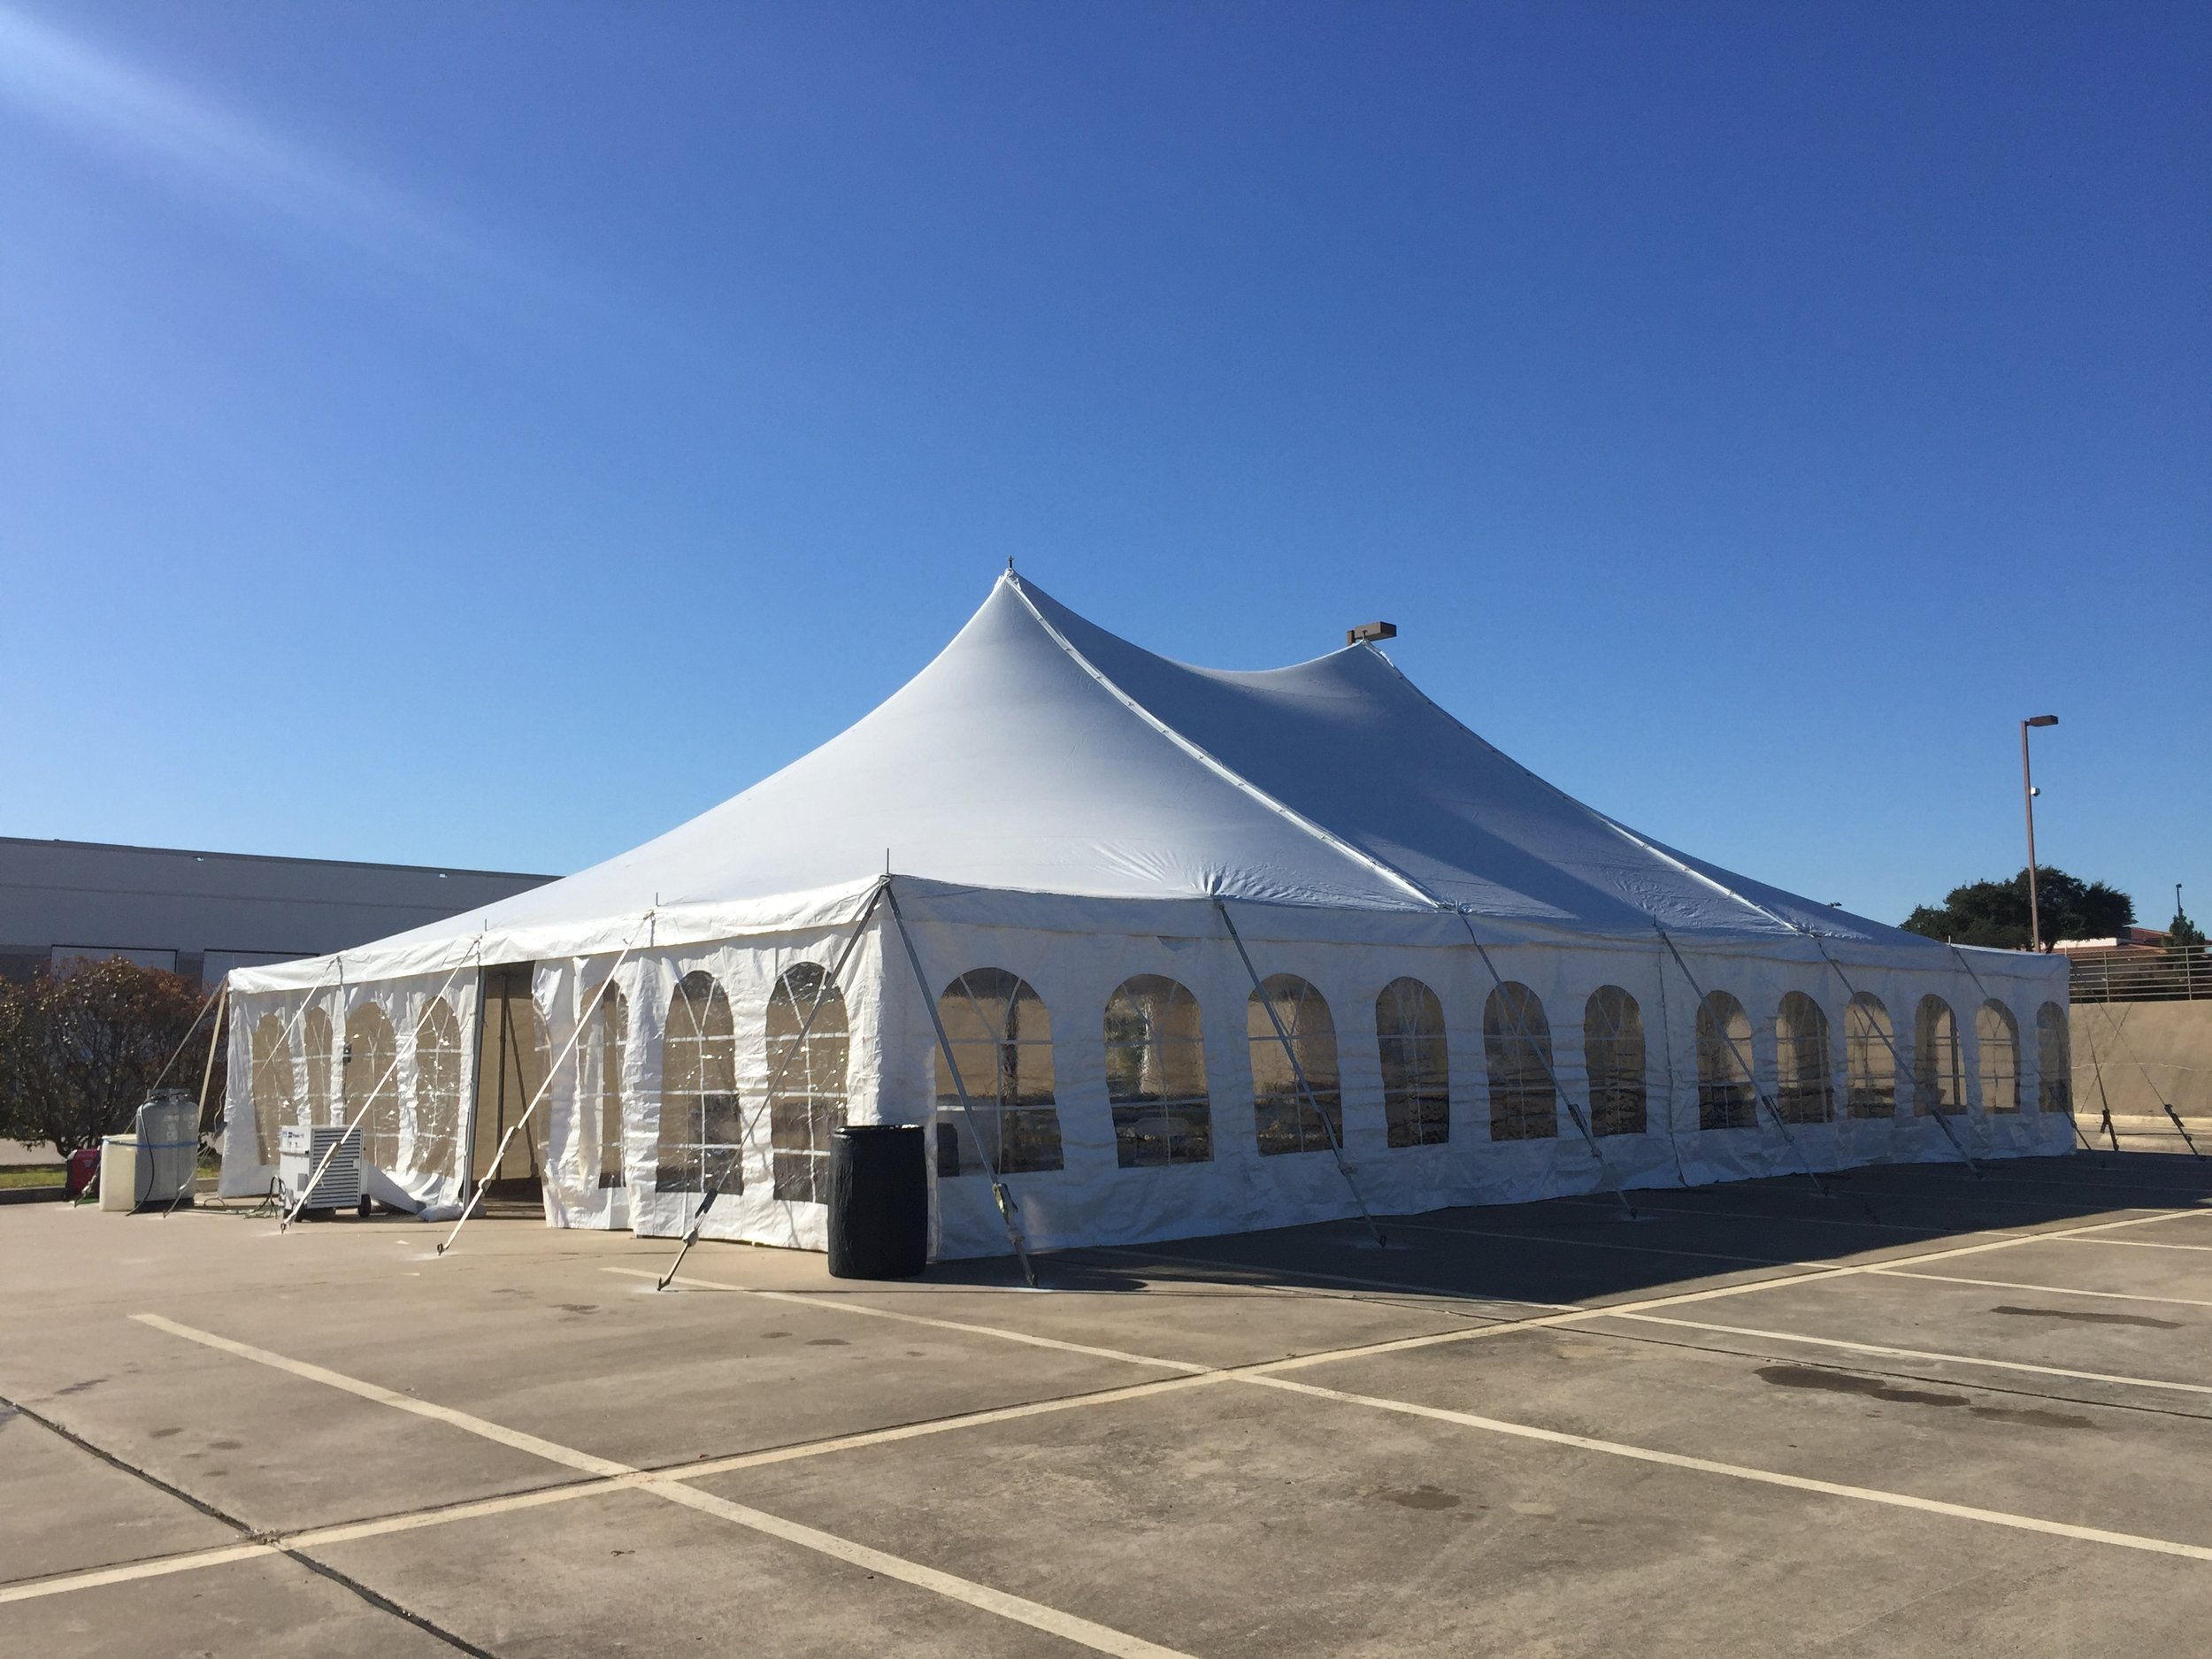 At once party rental tents.